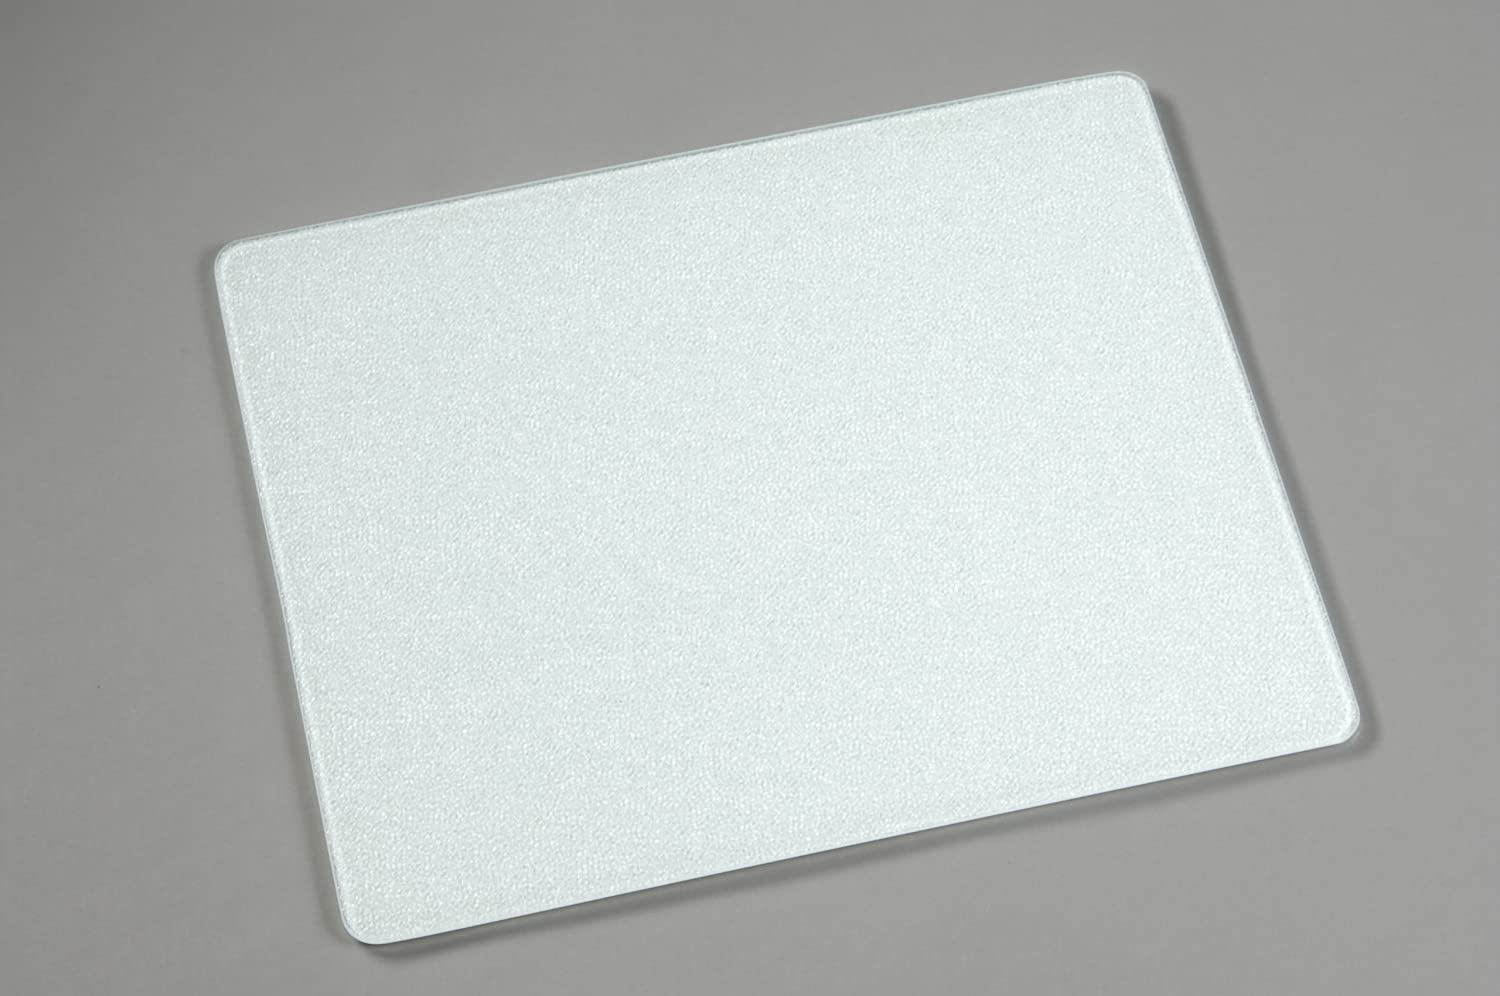 Corelle 91512WHCH White Enhancement 15x12 Counter Saver Tempered Glass Cutting Board